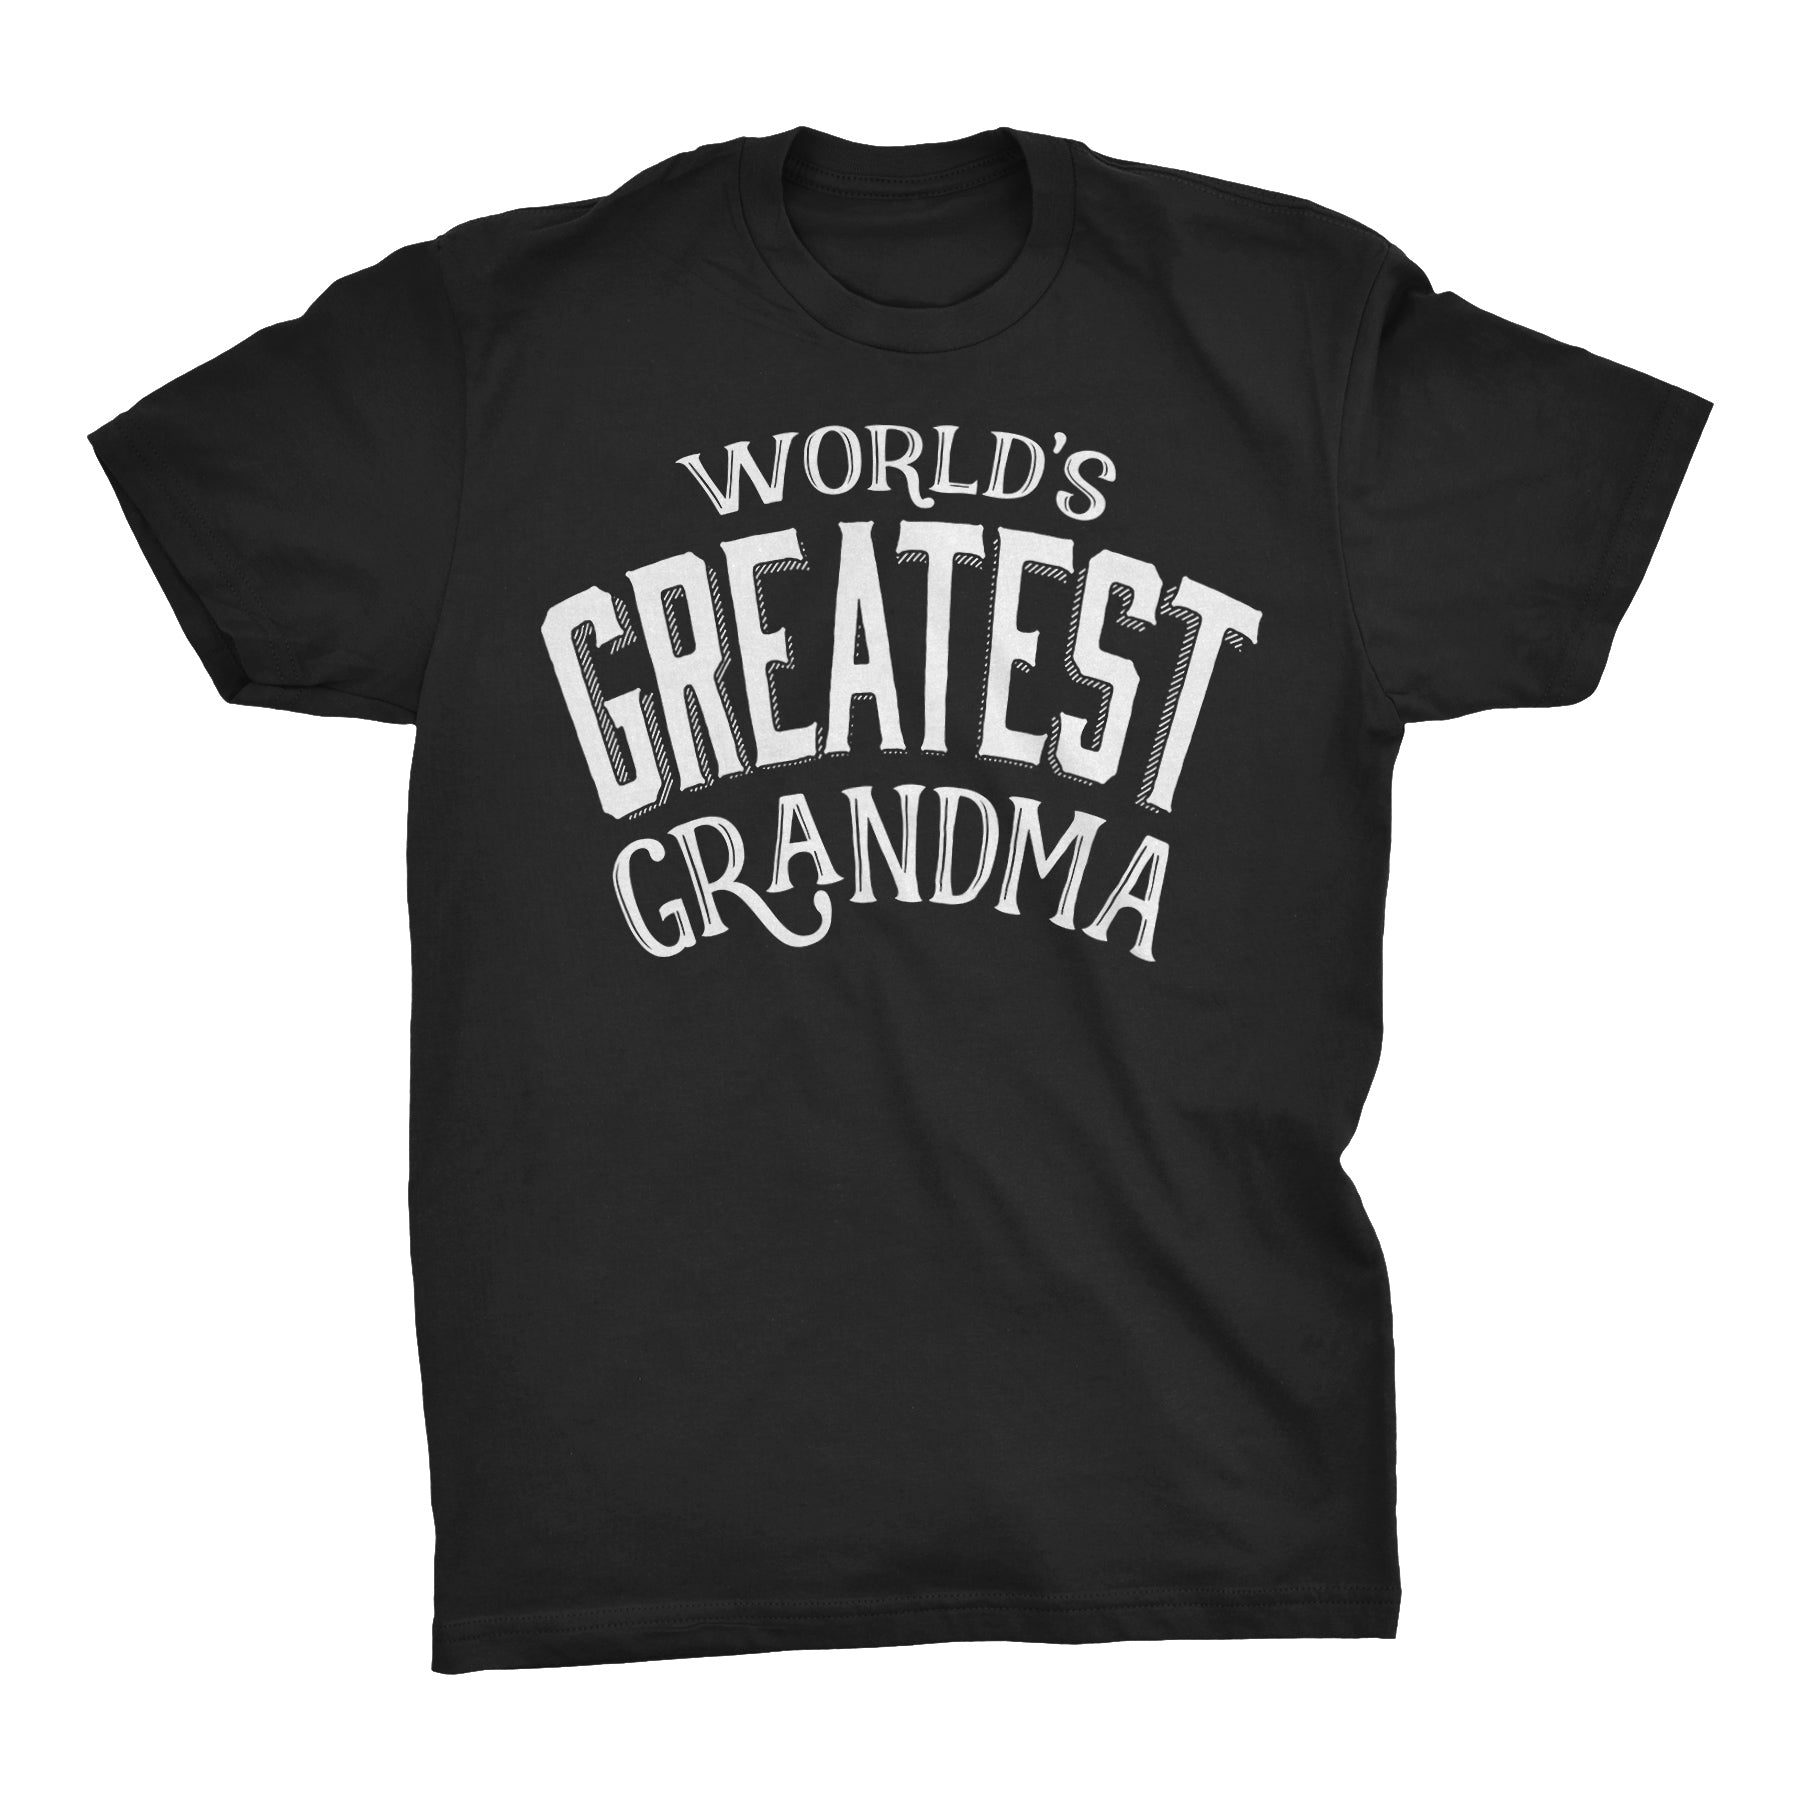 World's Greatest GRANDMA - 001 Mother's Day Grandmother T-shirt